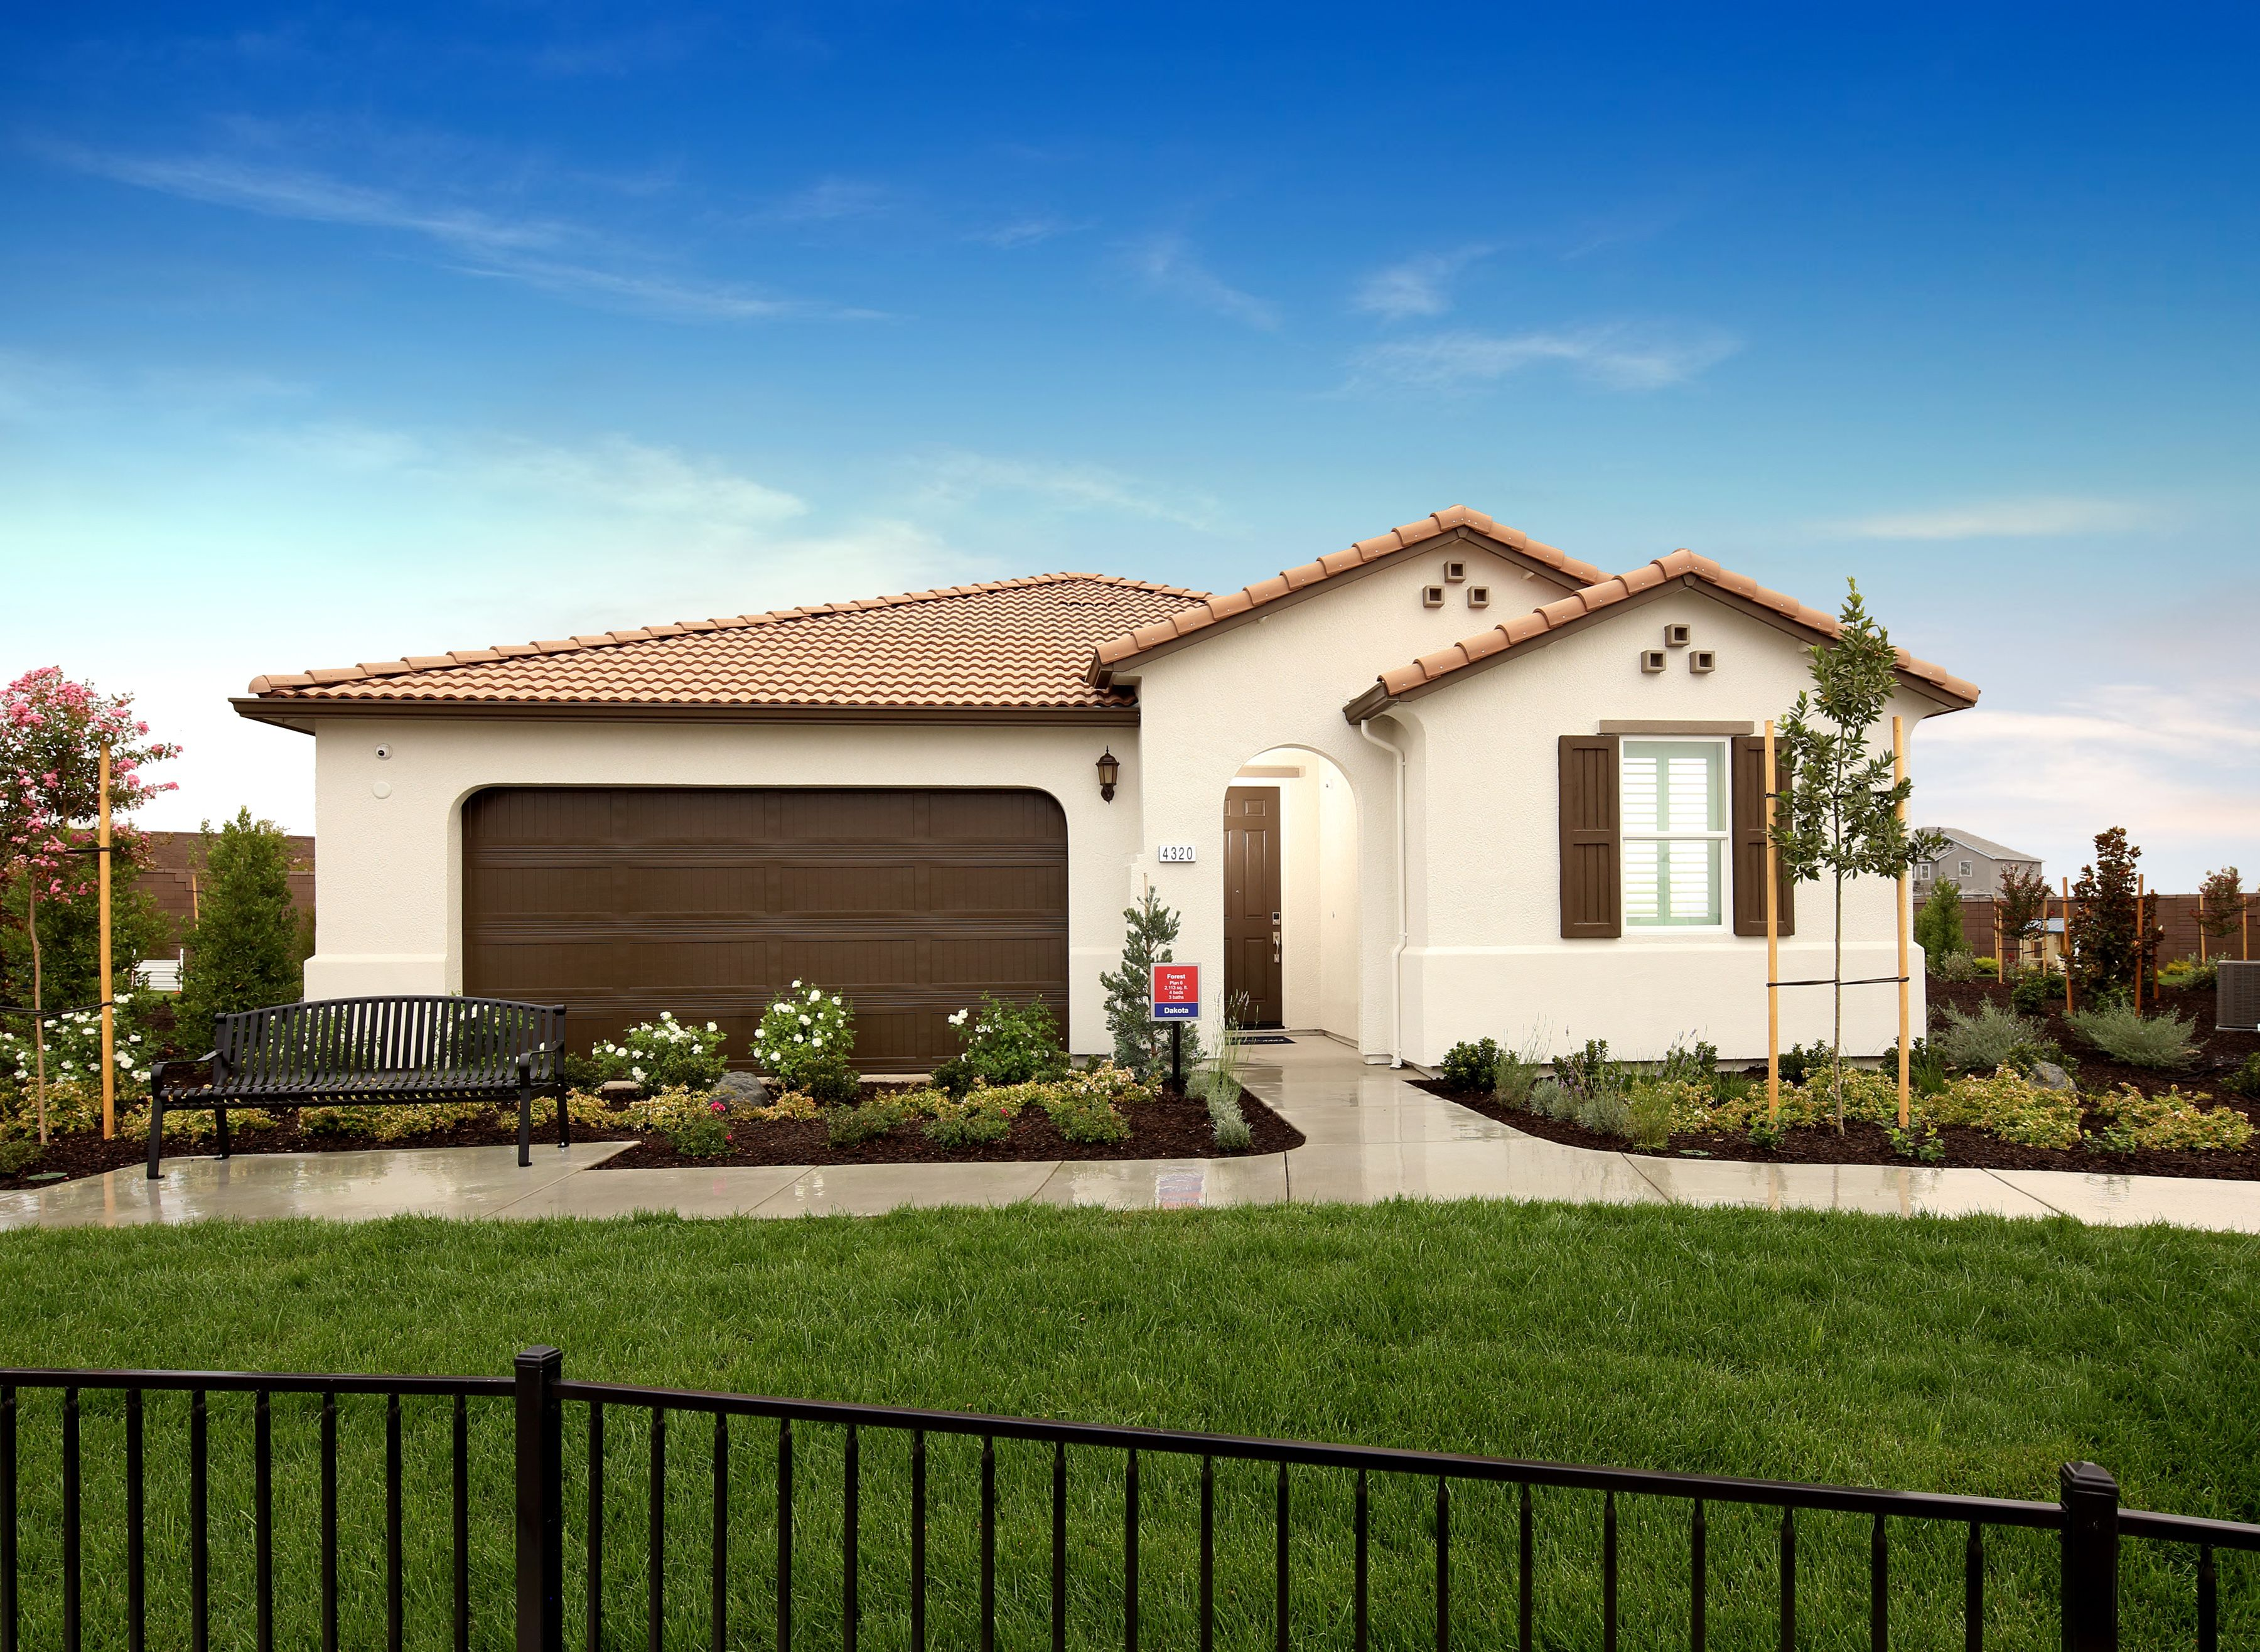 Beautiful onestory homes are waiting to be seen in